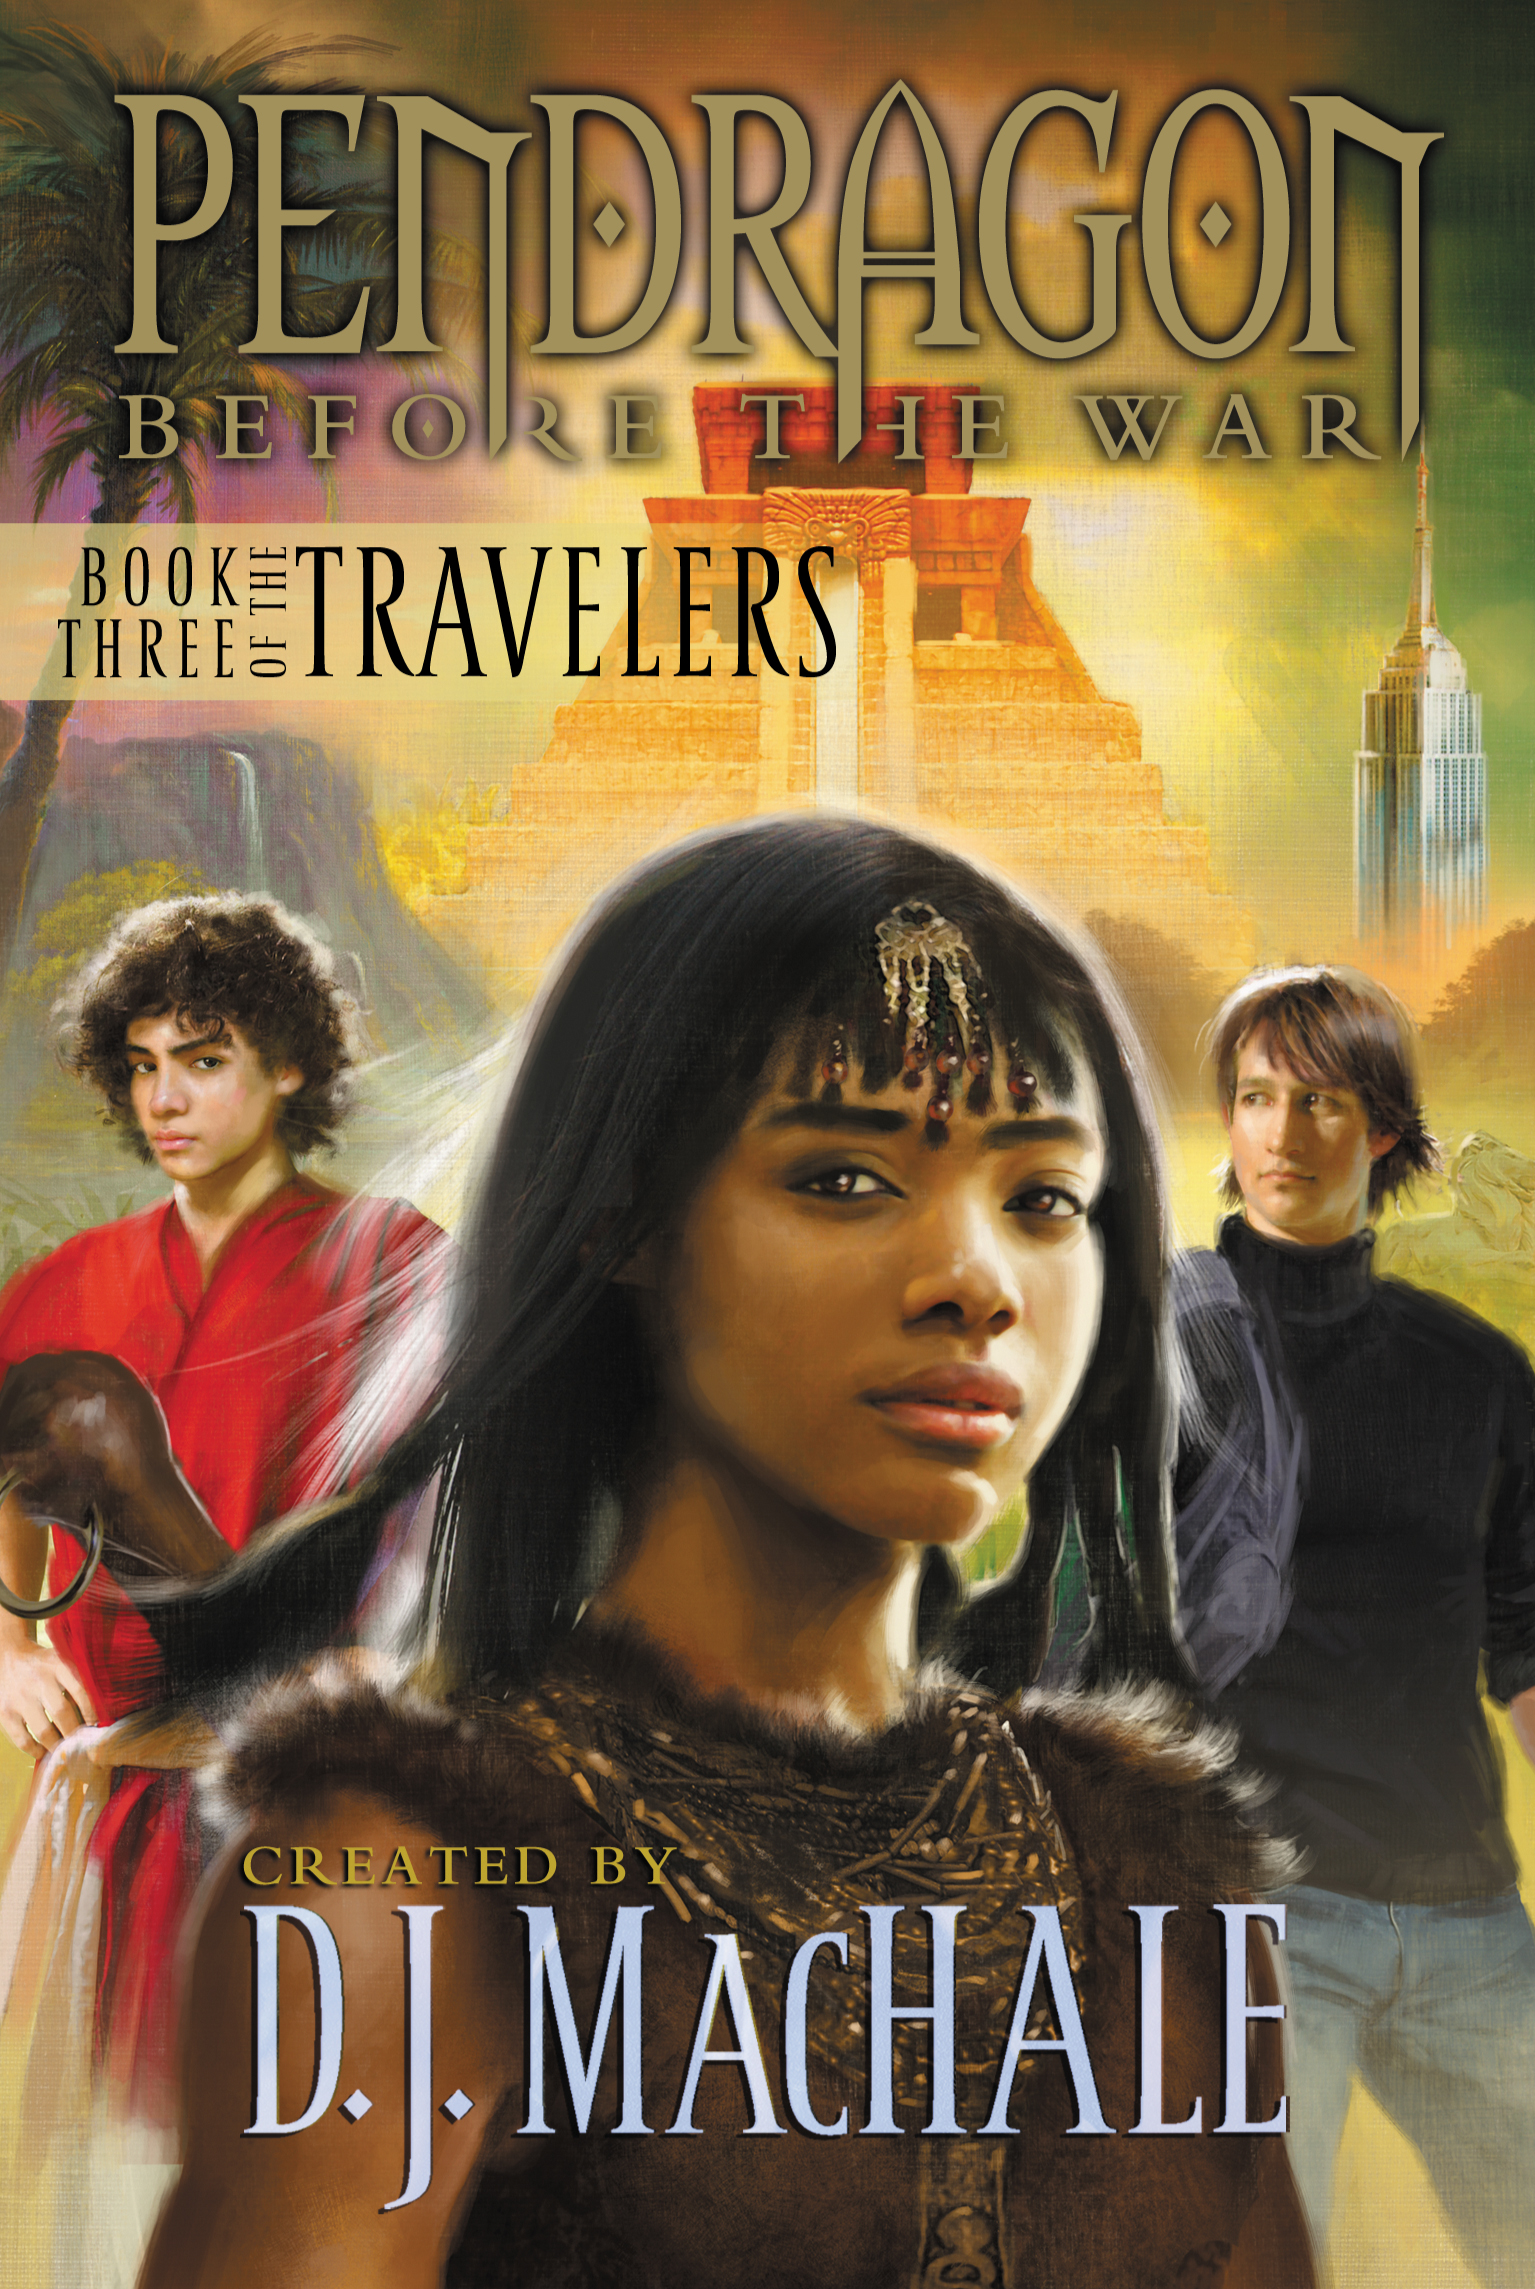 book report the pendragon series The paperback of the book two of the travelers (pendragon: before the war series #2) by d j machale, walter sorrells   at barnes & noble editorial reviews before the war, before bobby pendragon and saint dane, every territory of halla had a traveler these prodigies lived for years, even decades.